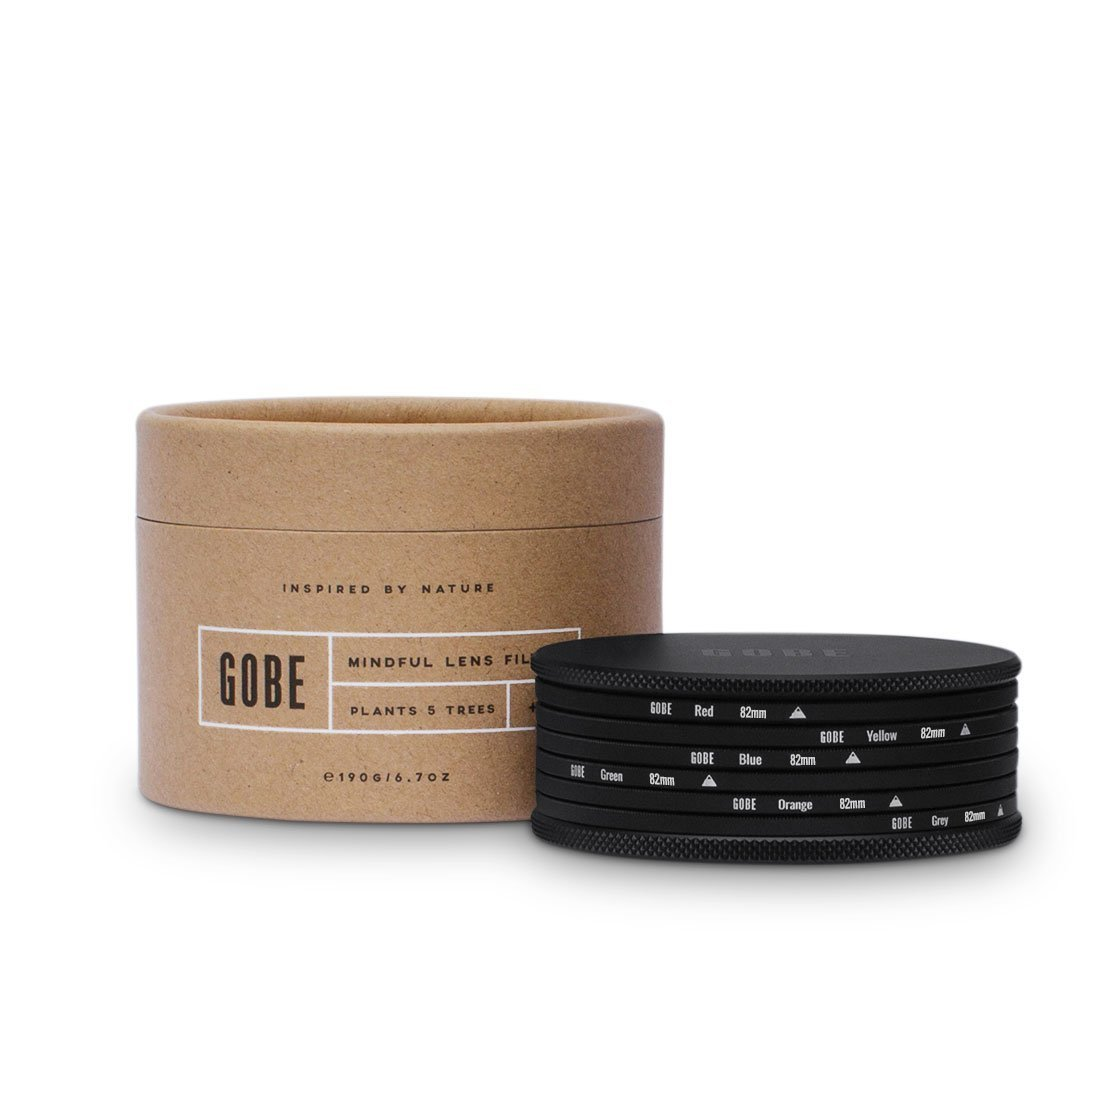 Gobe Color 82mm Filters: Orange, Blue, Grey, Red, Yellow, Green